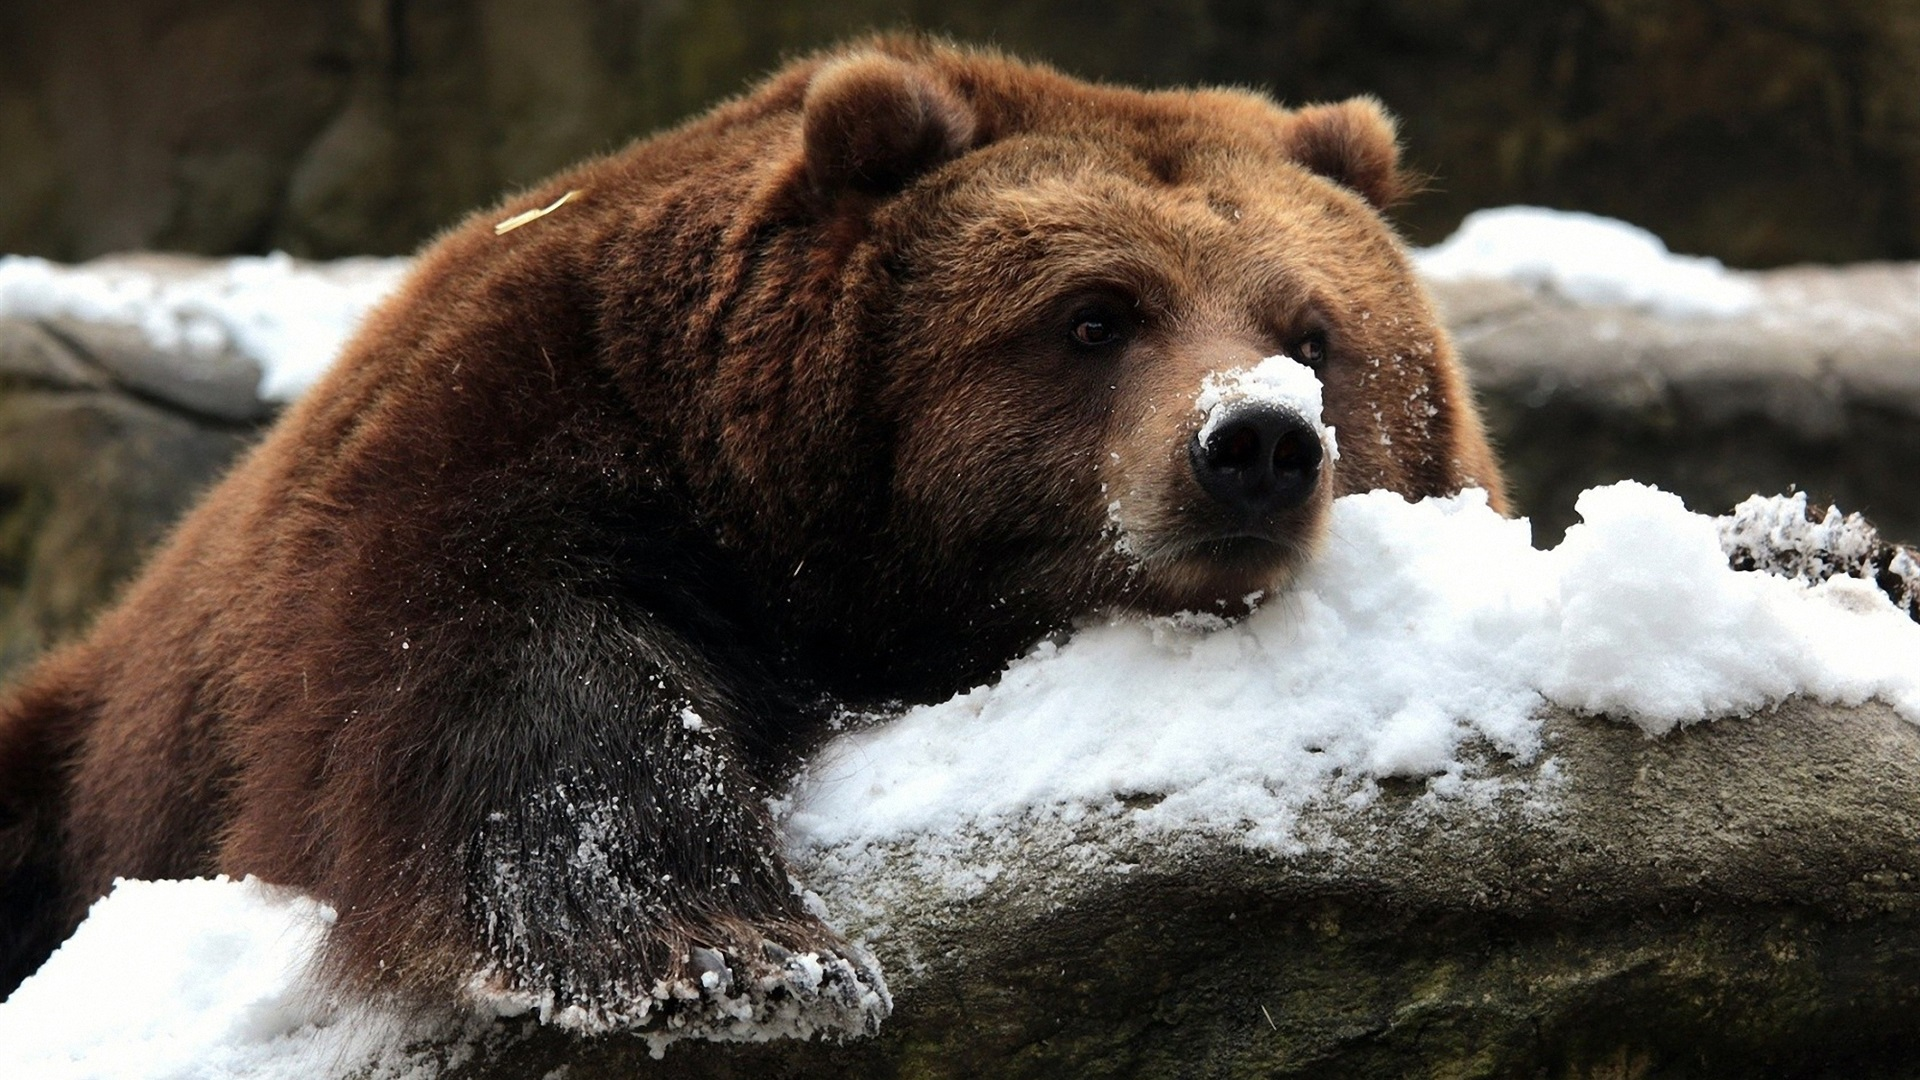 wallpaper brown bear in winter, snow 1920x1200 hd picture, image